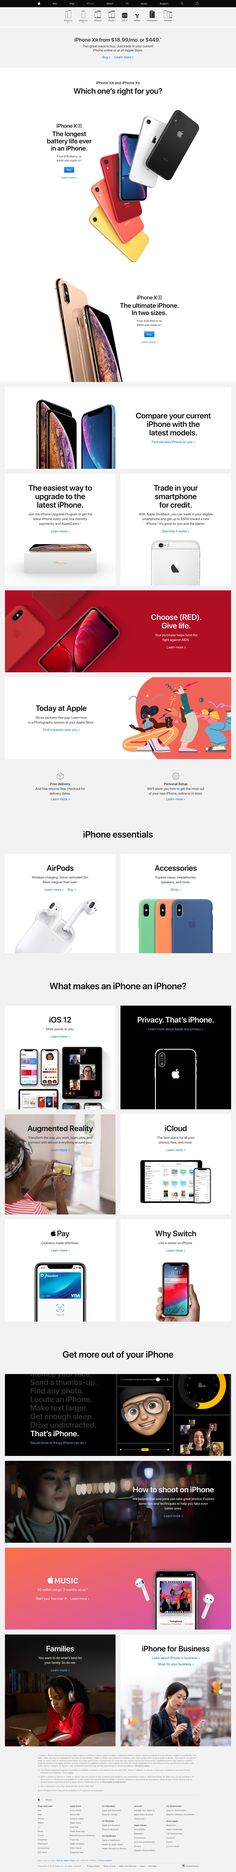 Apple Commercial, Iphone